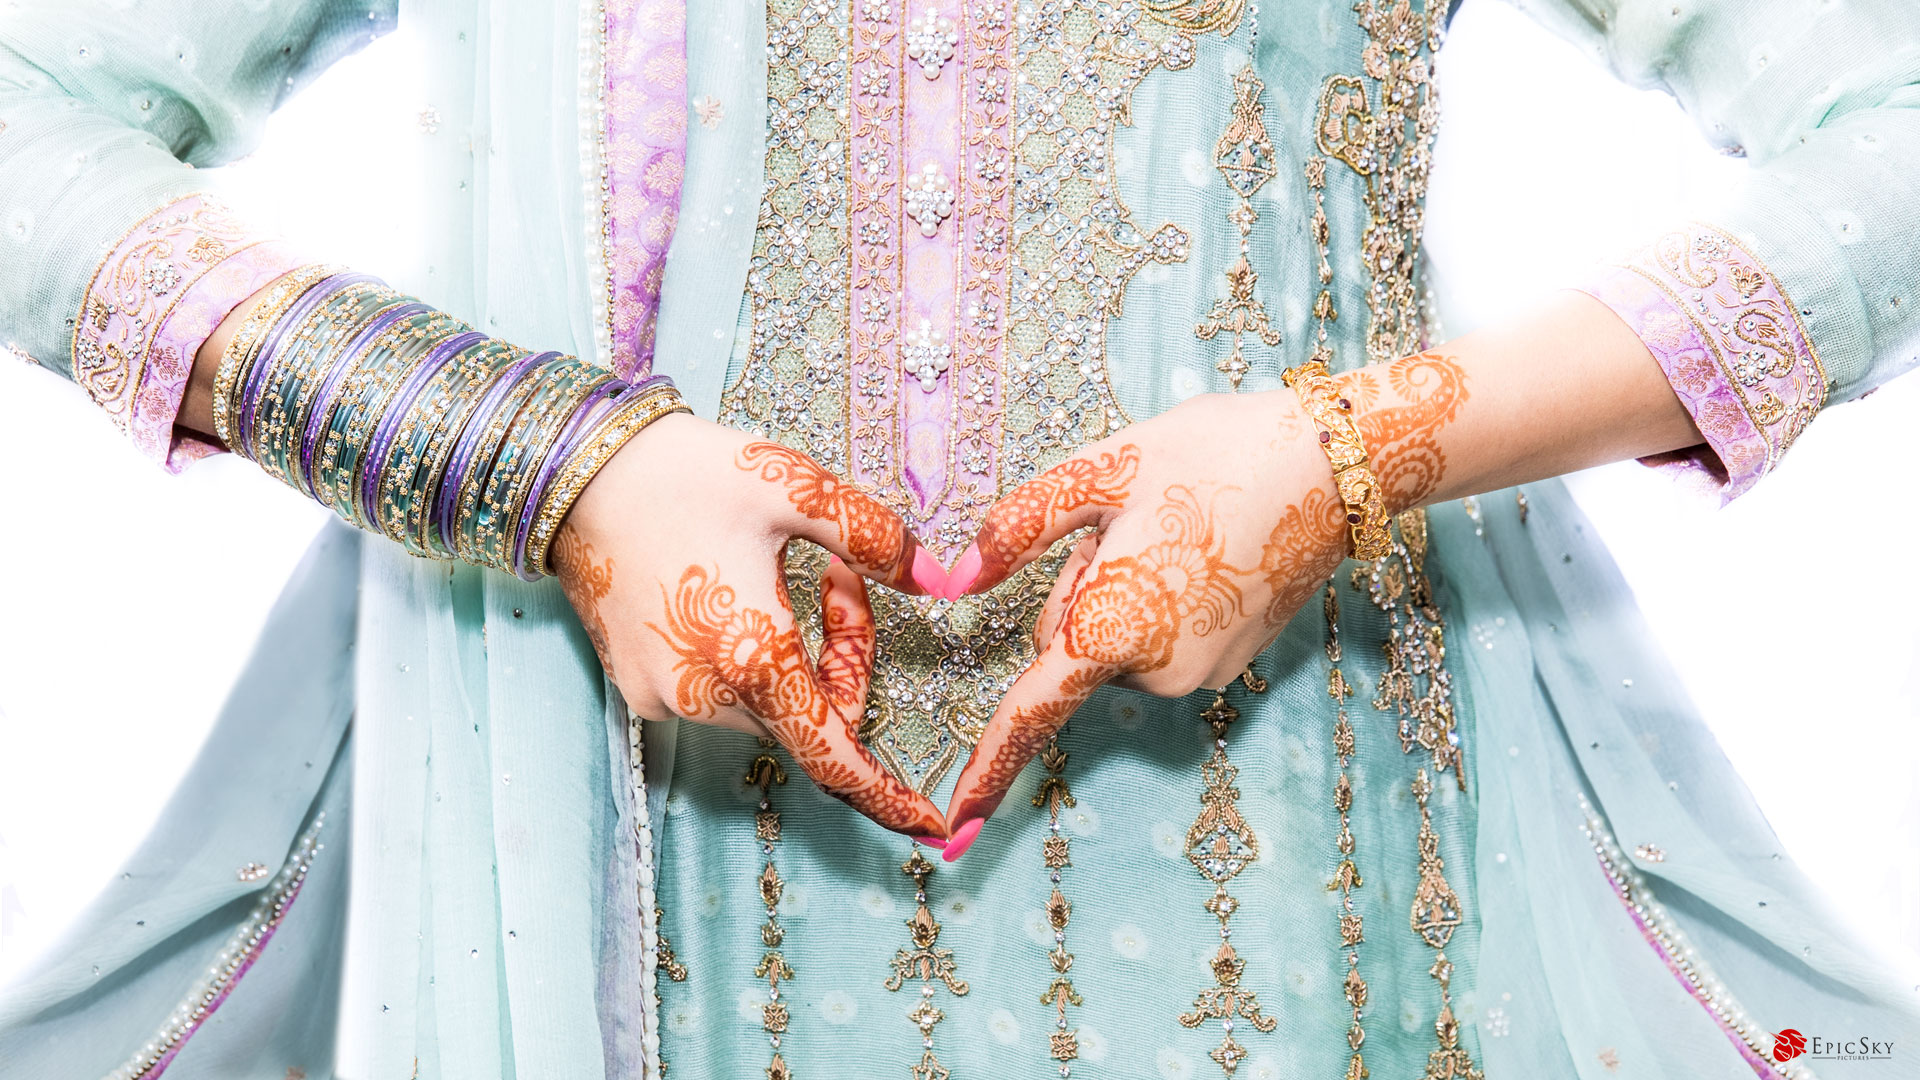 epicskypictures_eshoot_photography_wedding_photoshoot_gettingmarried_brampton_hands_heartt_indian_bridetobe_bluedress_love_cute_thisisepic_toronto_ontario_site